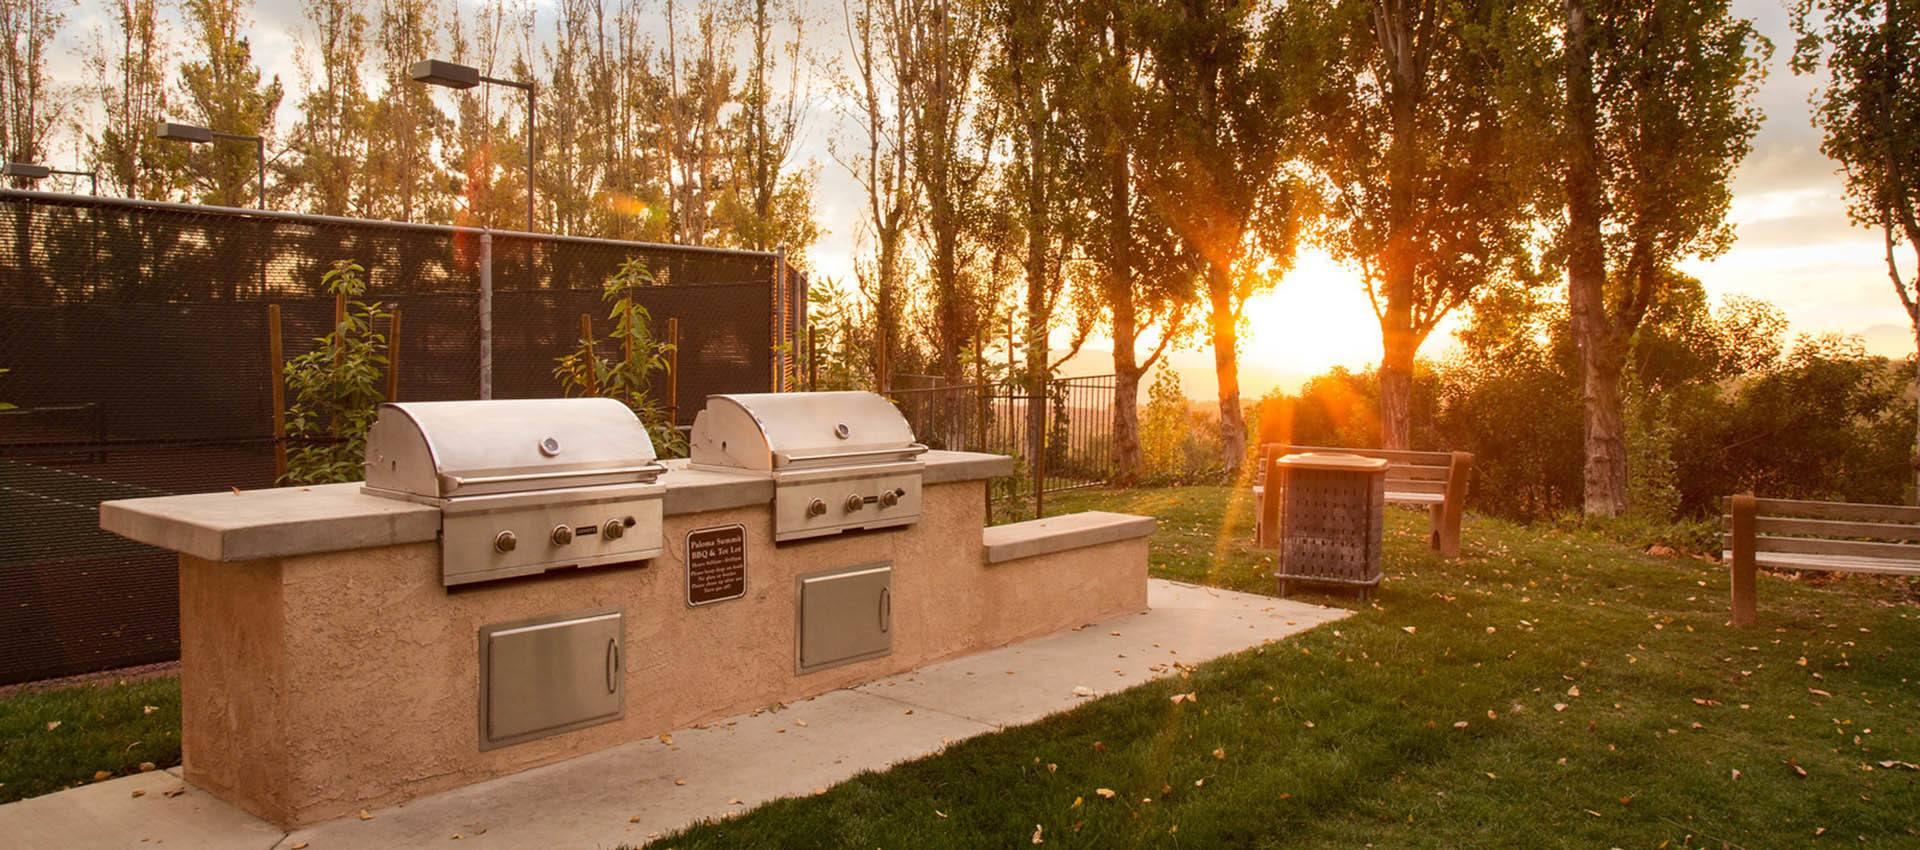 Enjoy Our Onsite Bbq Grills at Paloma Summit Condominium Rentals in Foothill Ranch, California